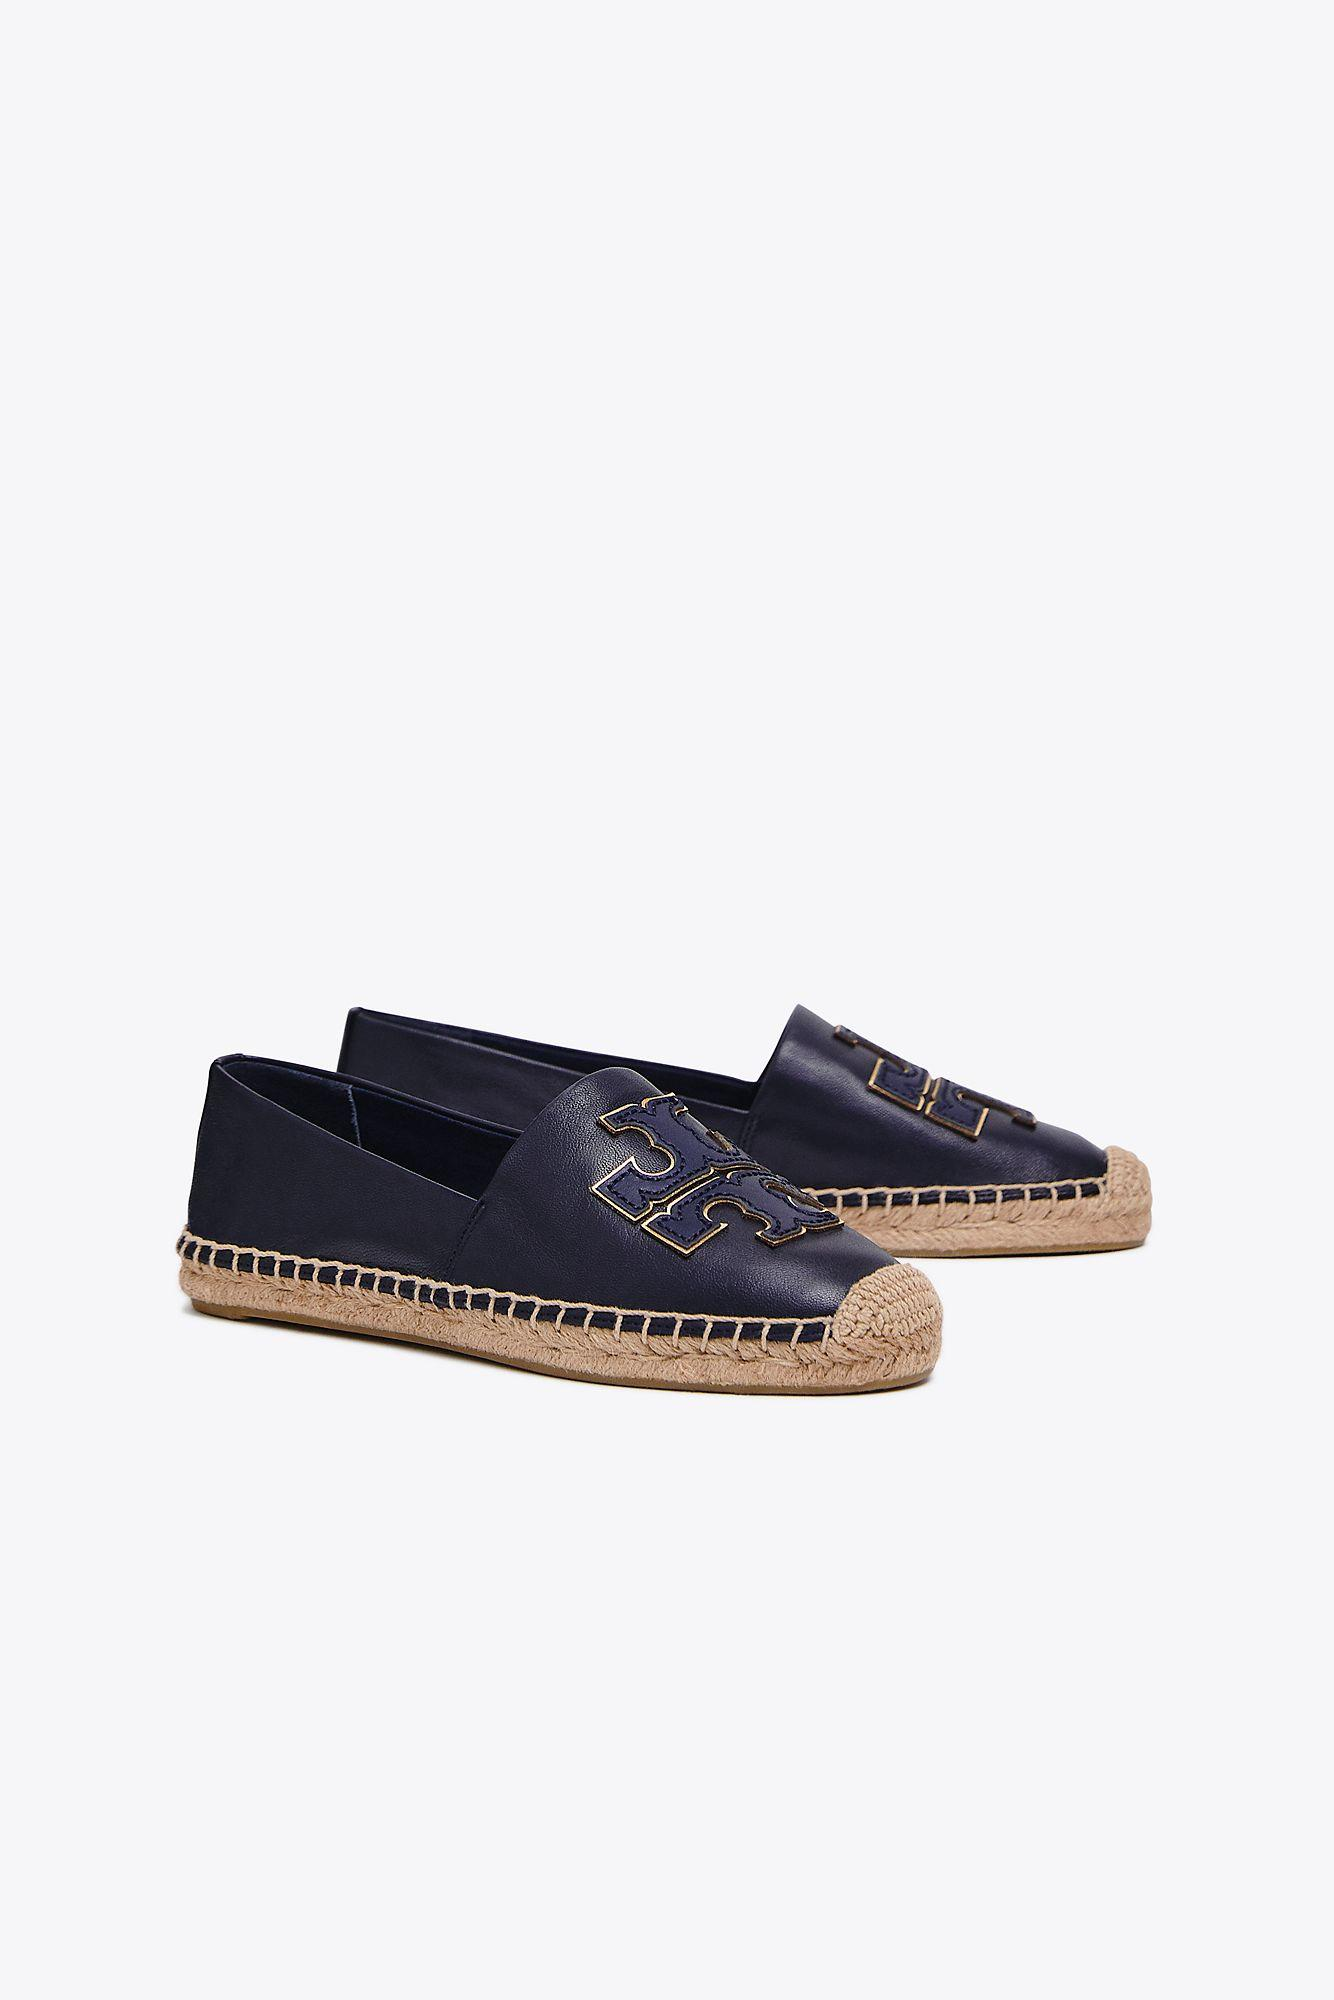 d04695150d8f08 Tory Burch Ines Espadrille (perfect Navy perfect Navy gold) Women s ...